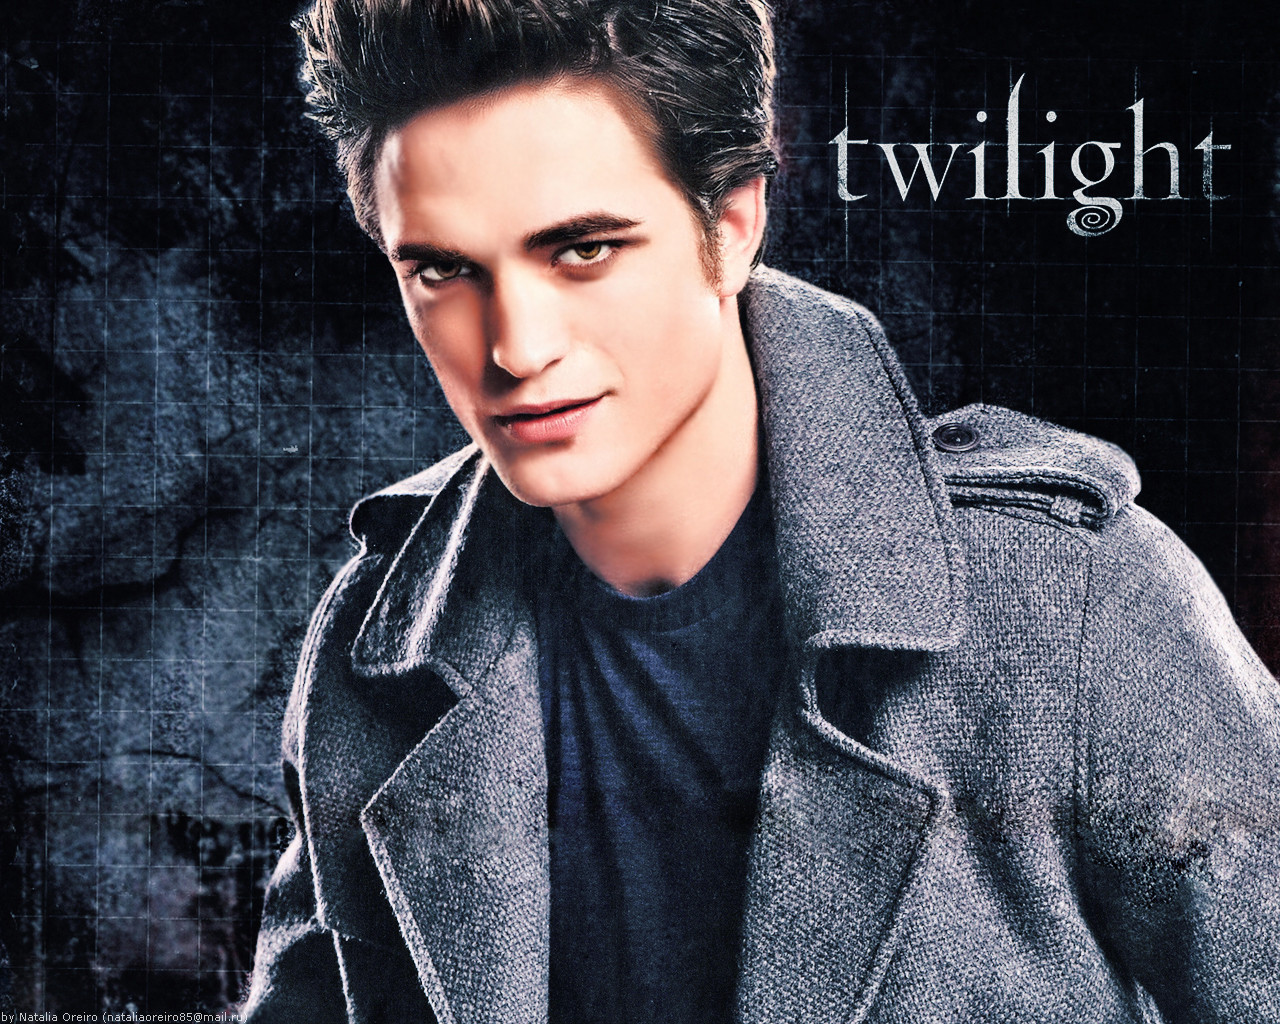 edward cullen Twilight Series Edward Cullen